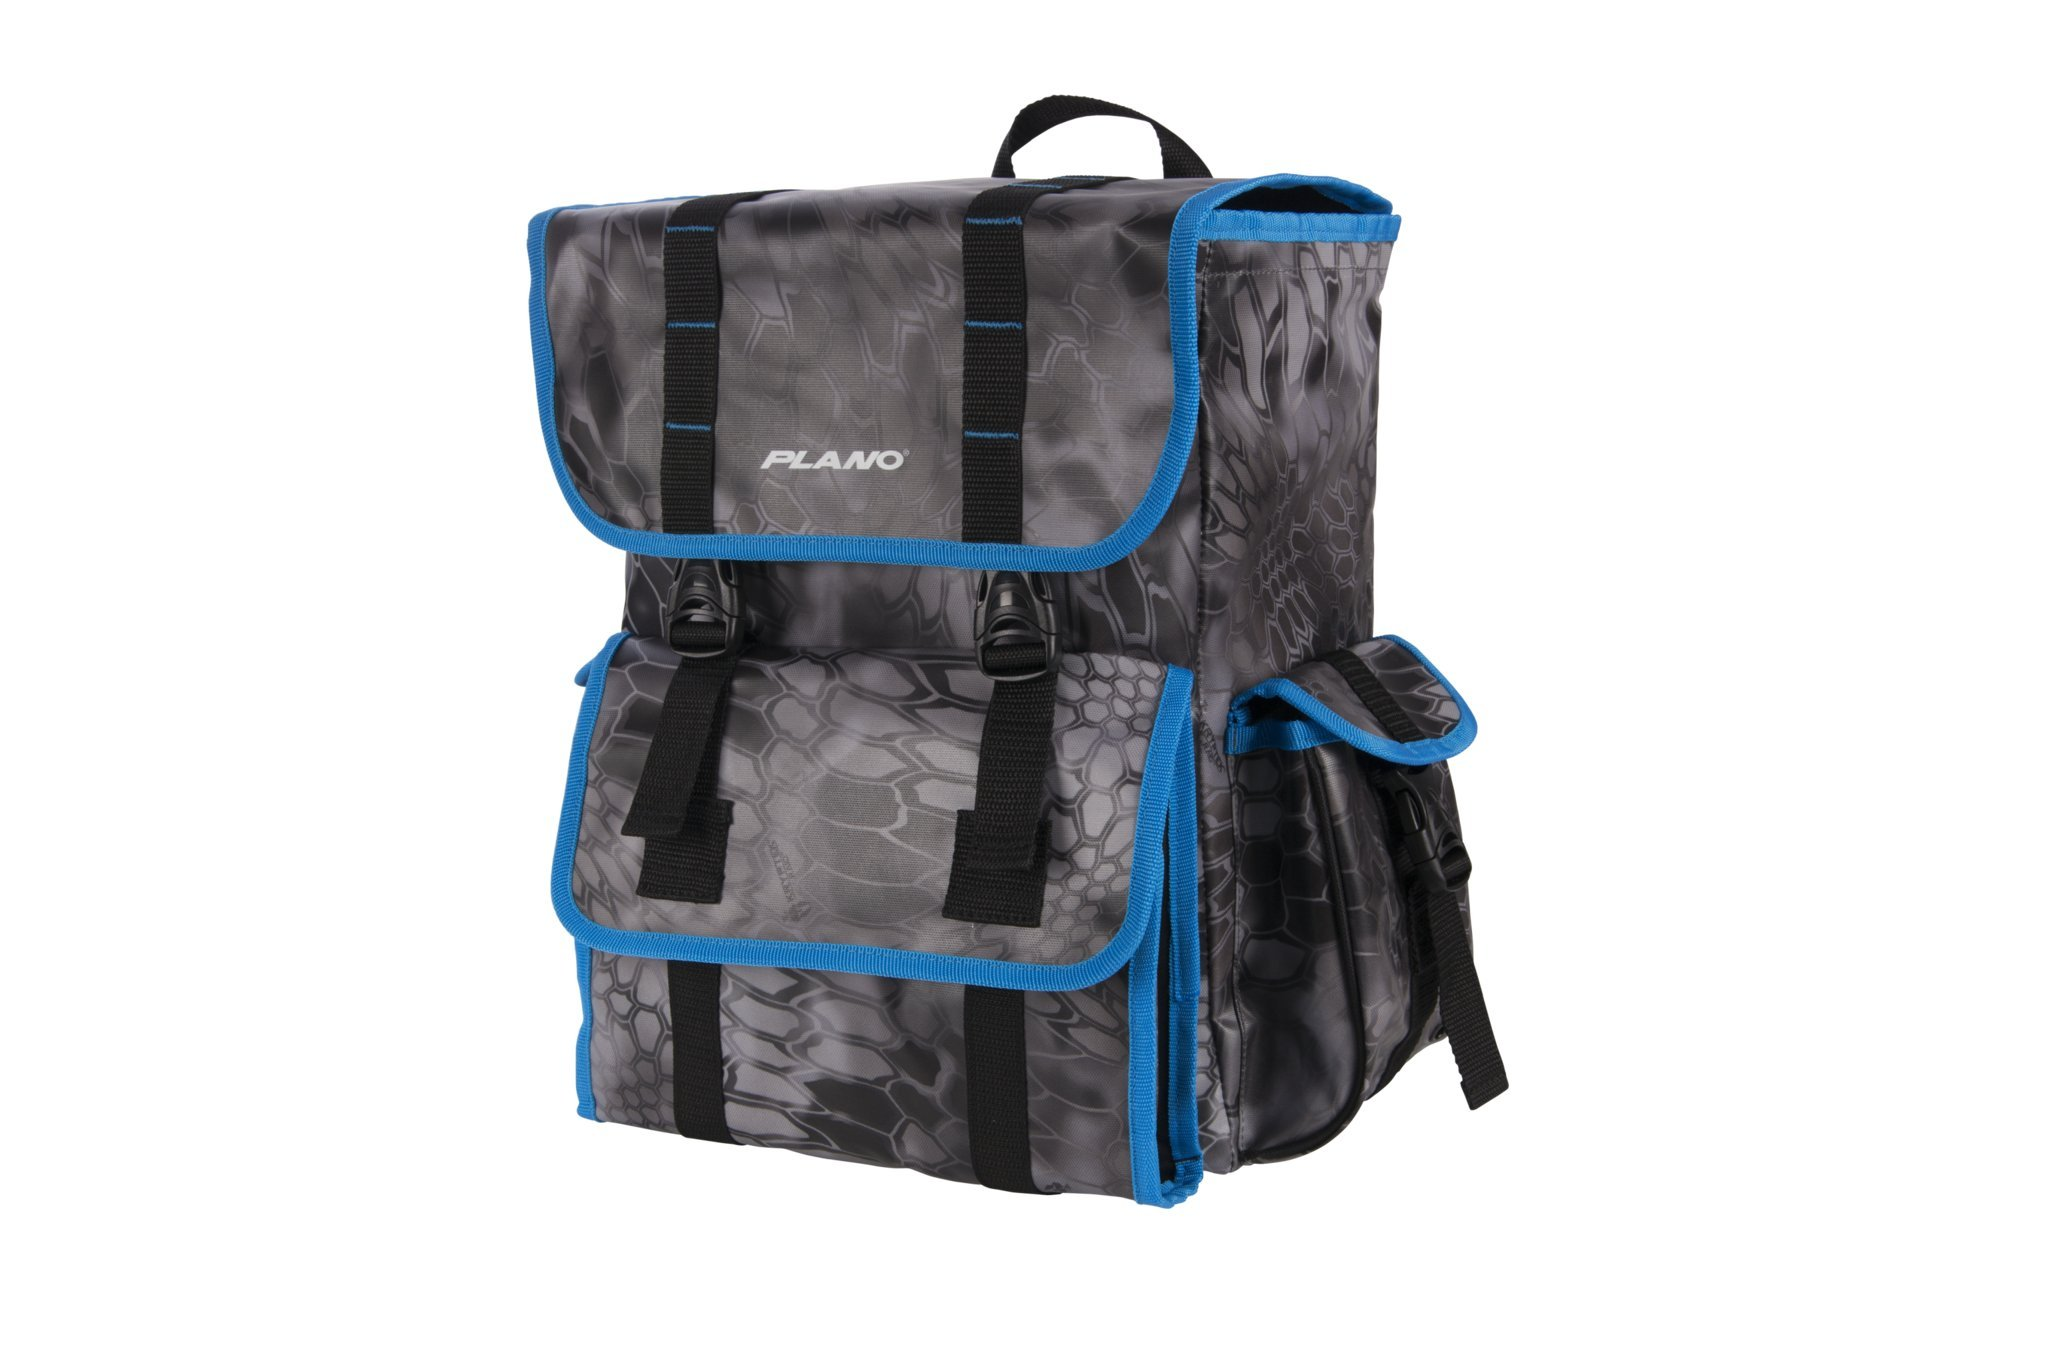 Plano PLAB19800 Z-Series Tackle Backpack, Kryptek Raid/Blue, Premium Tackle Storage